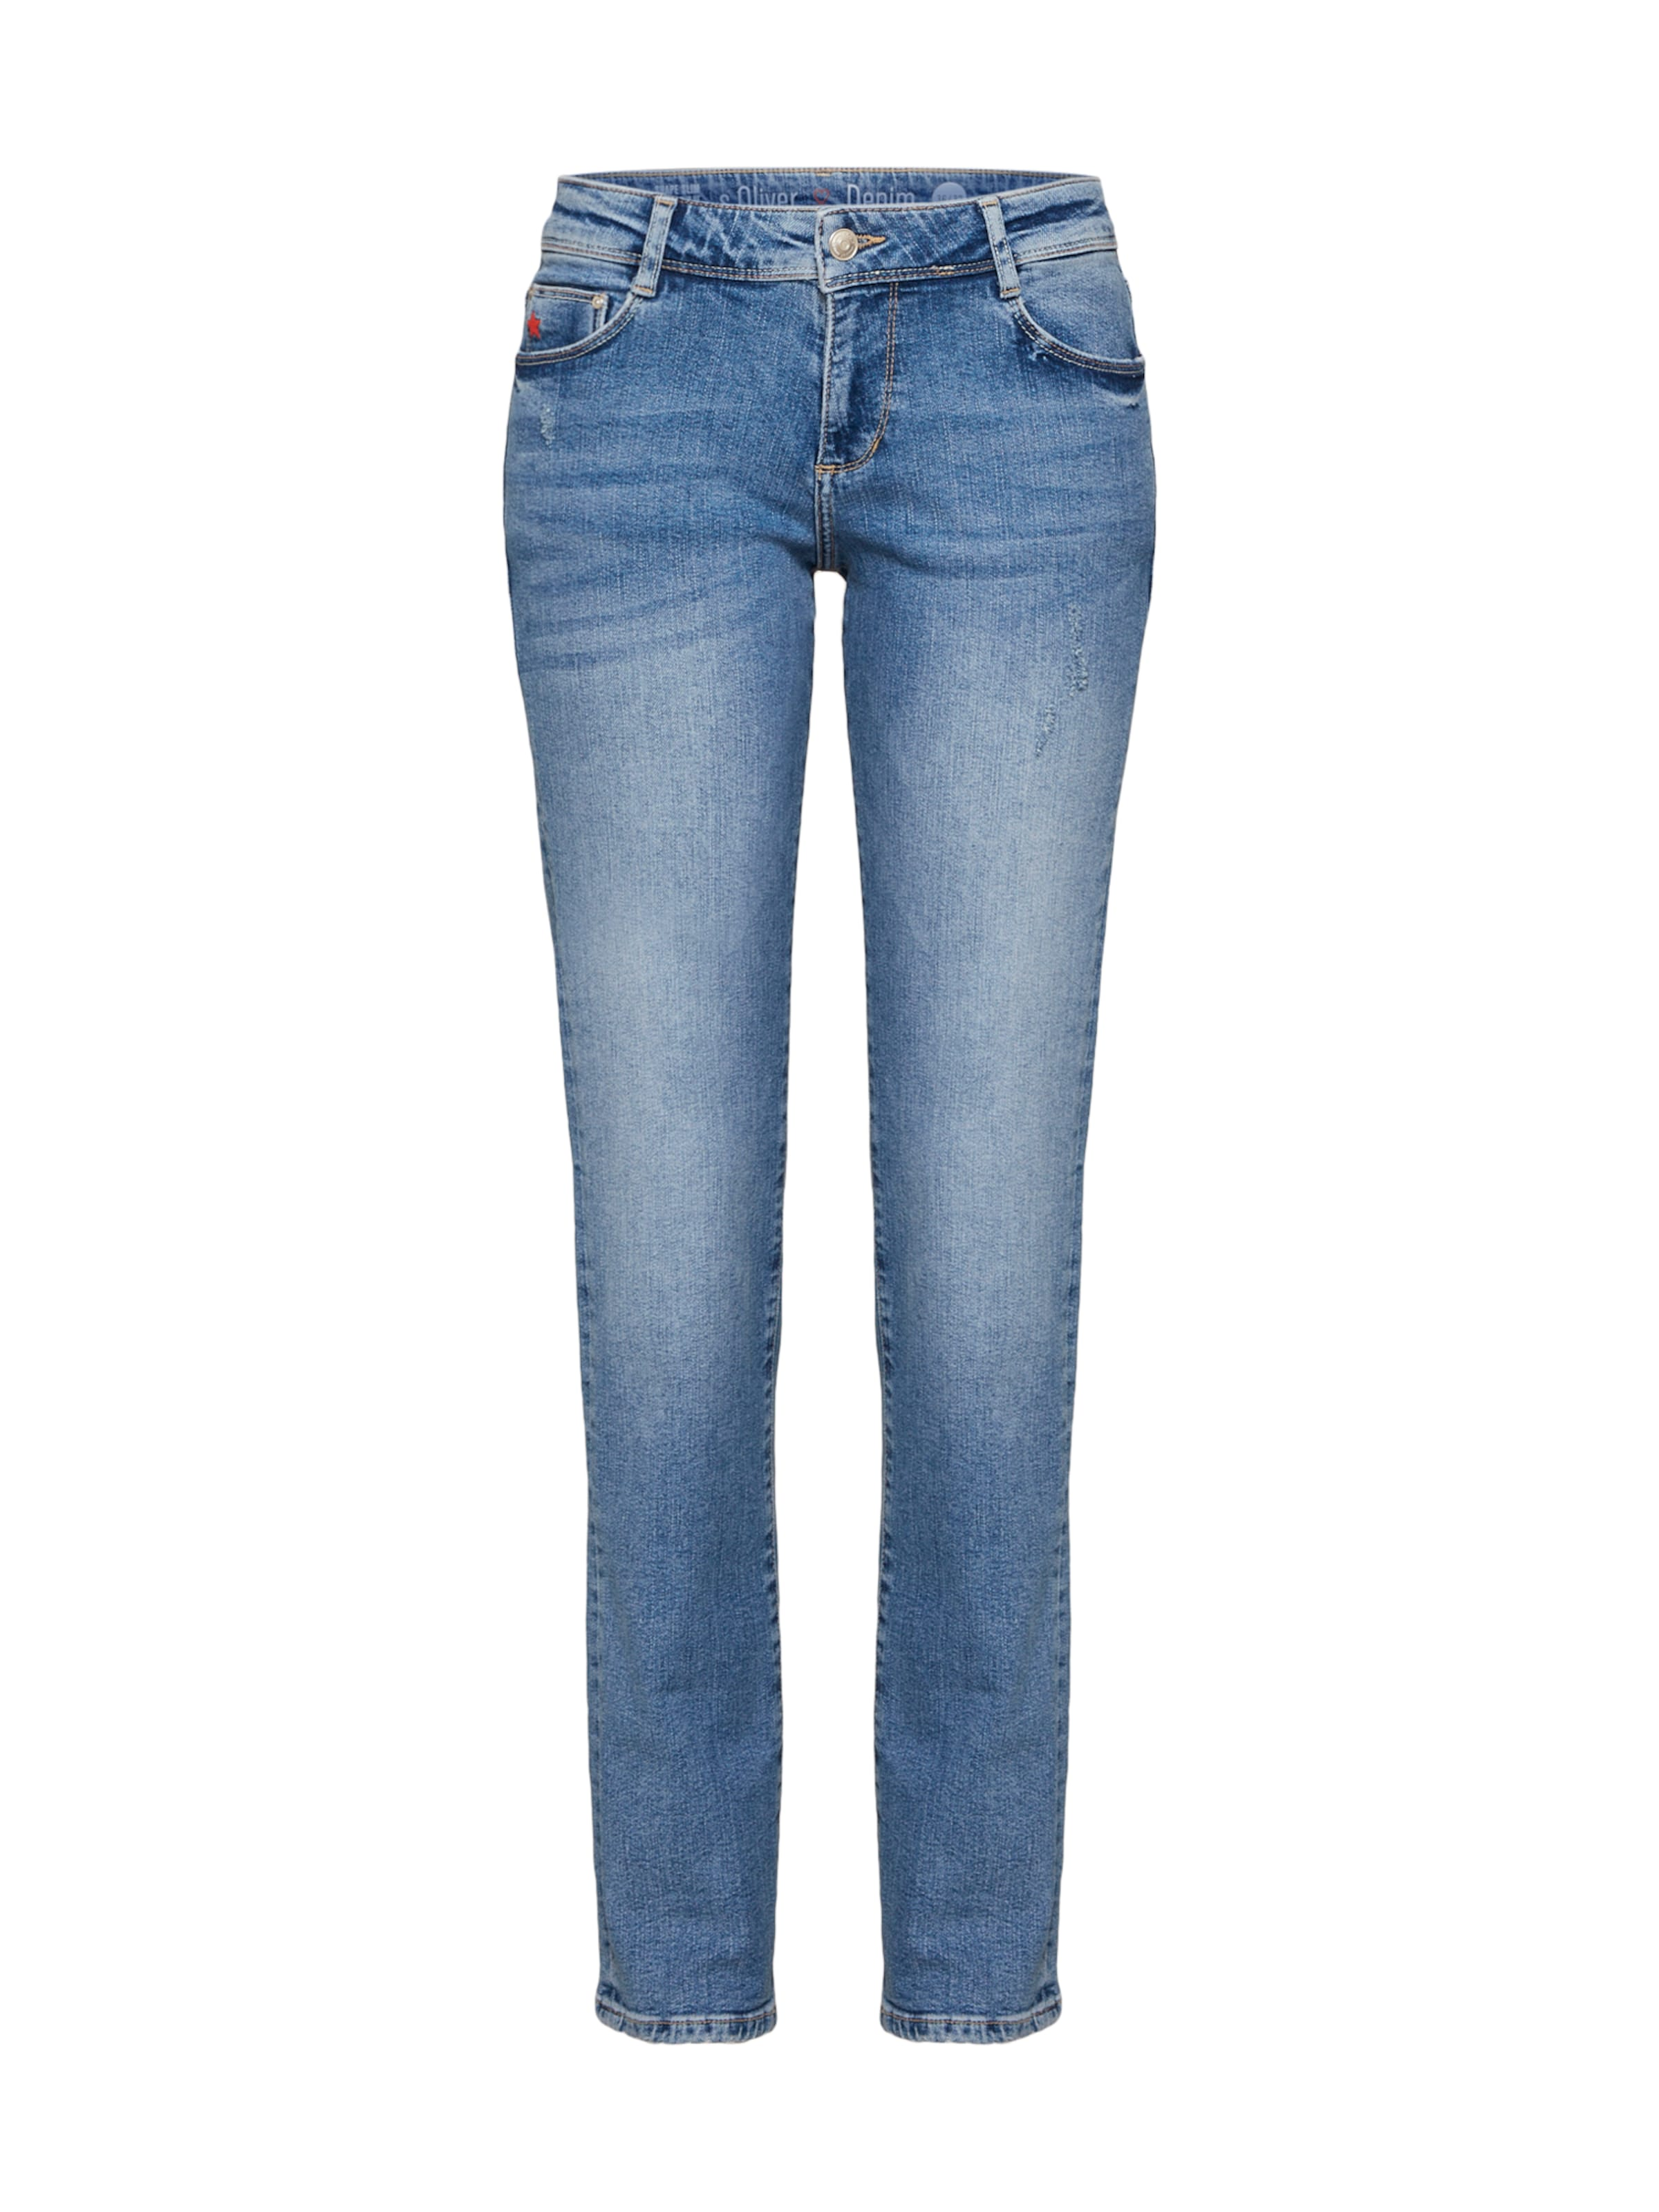 oliver Jeans S Blue Denim Red In Label ymN0Ov8nw